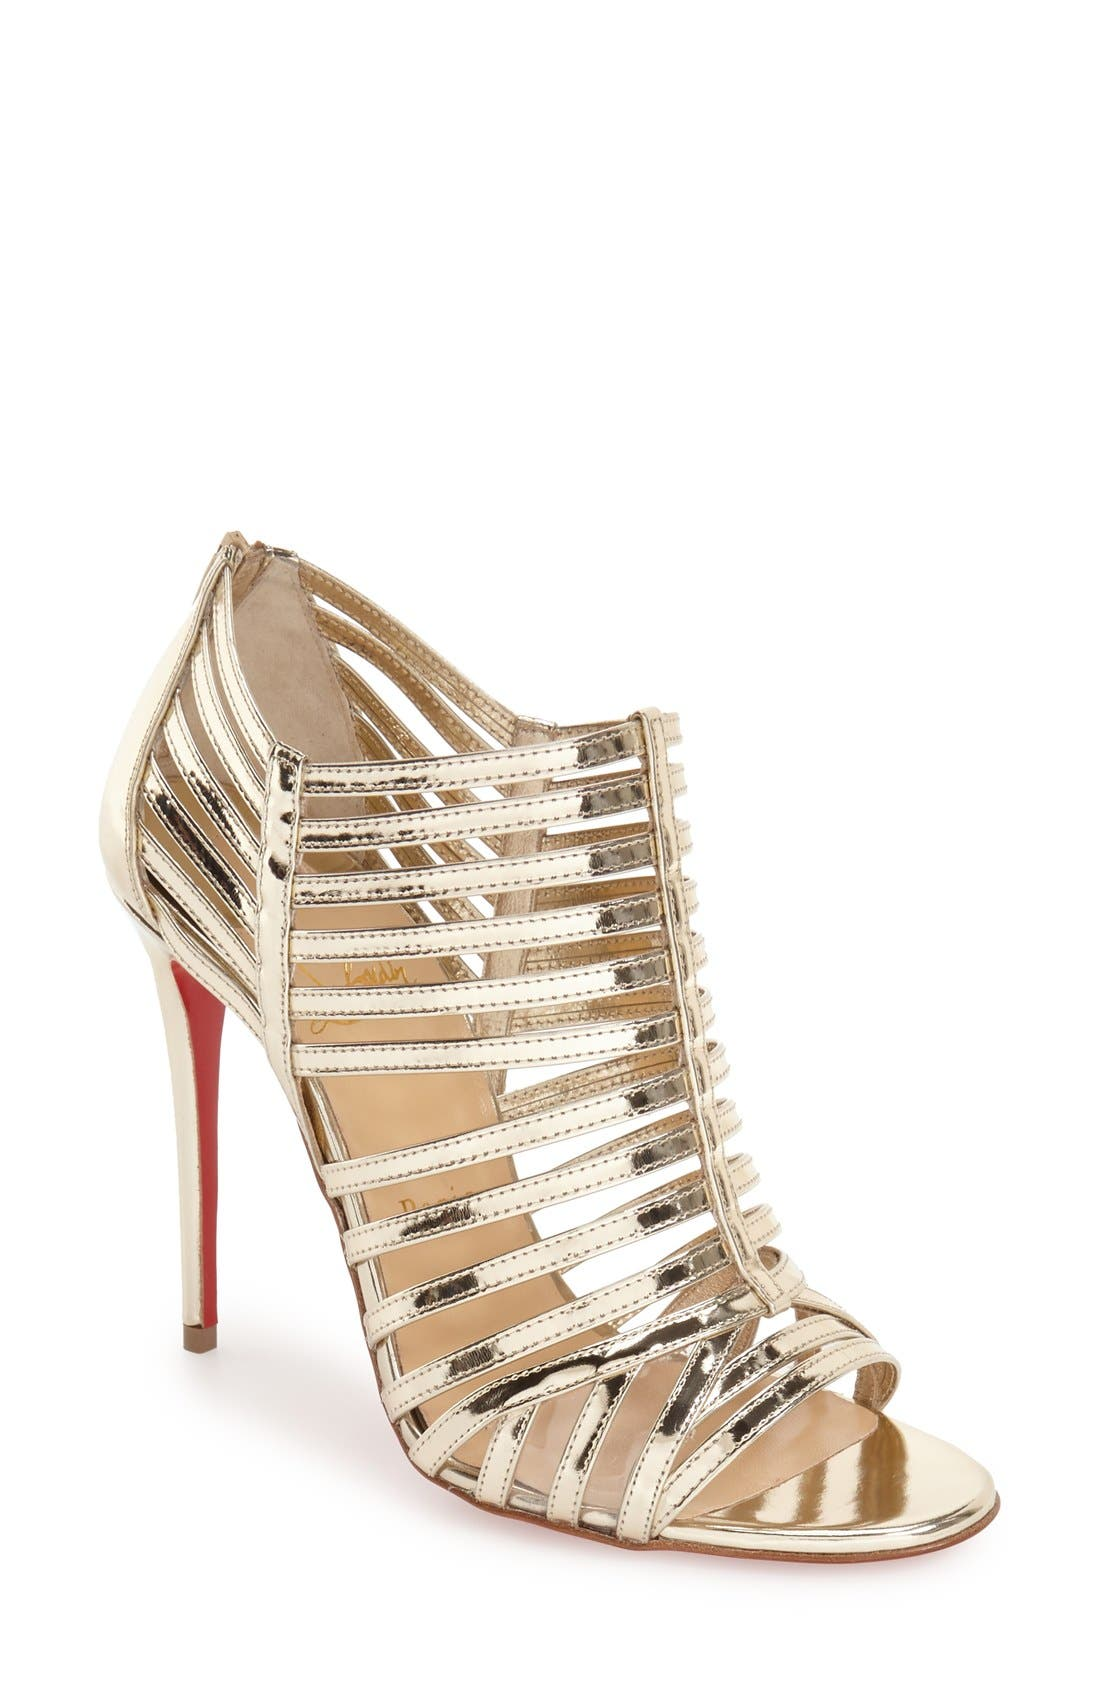 Alternate Image 1 Selected - Christian Louboutin 'City Jolly' Cage Sandal